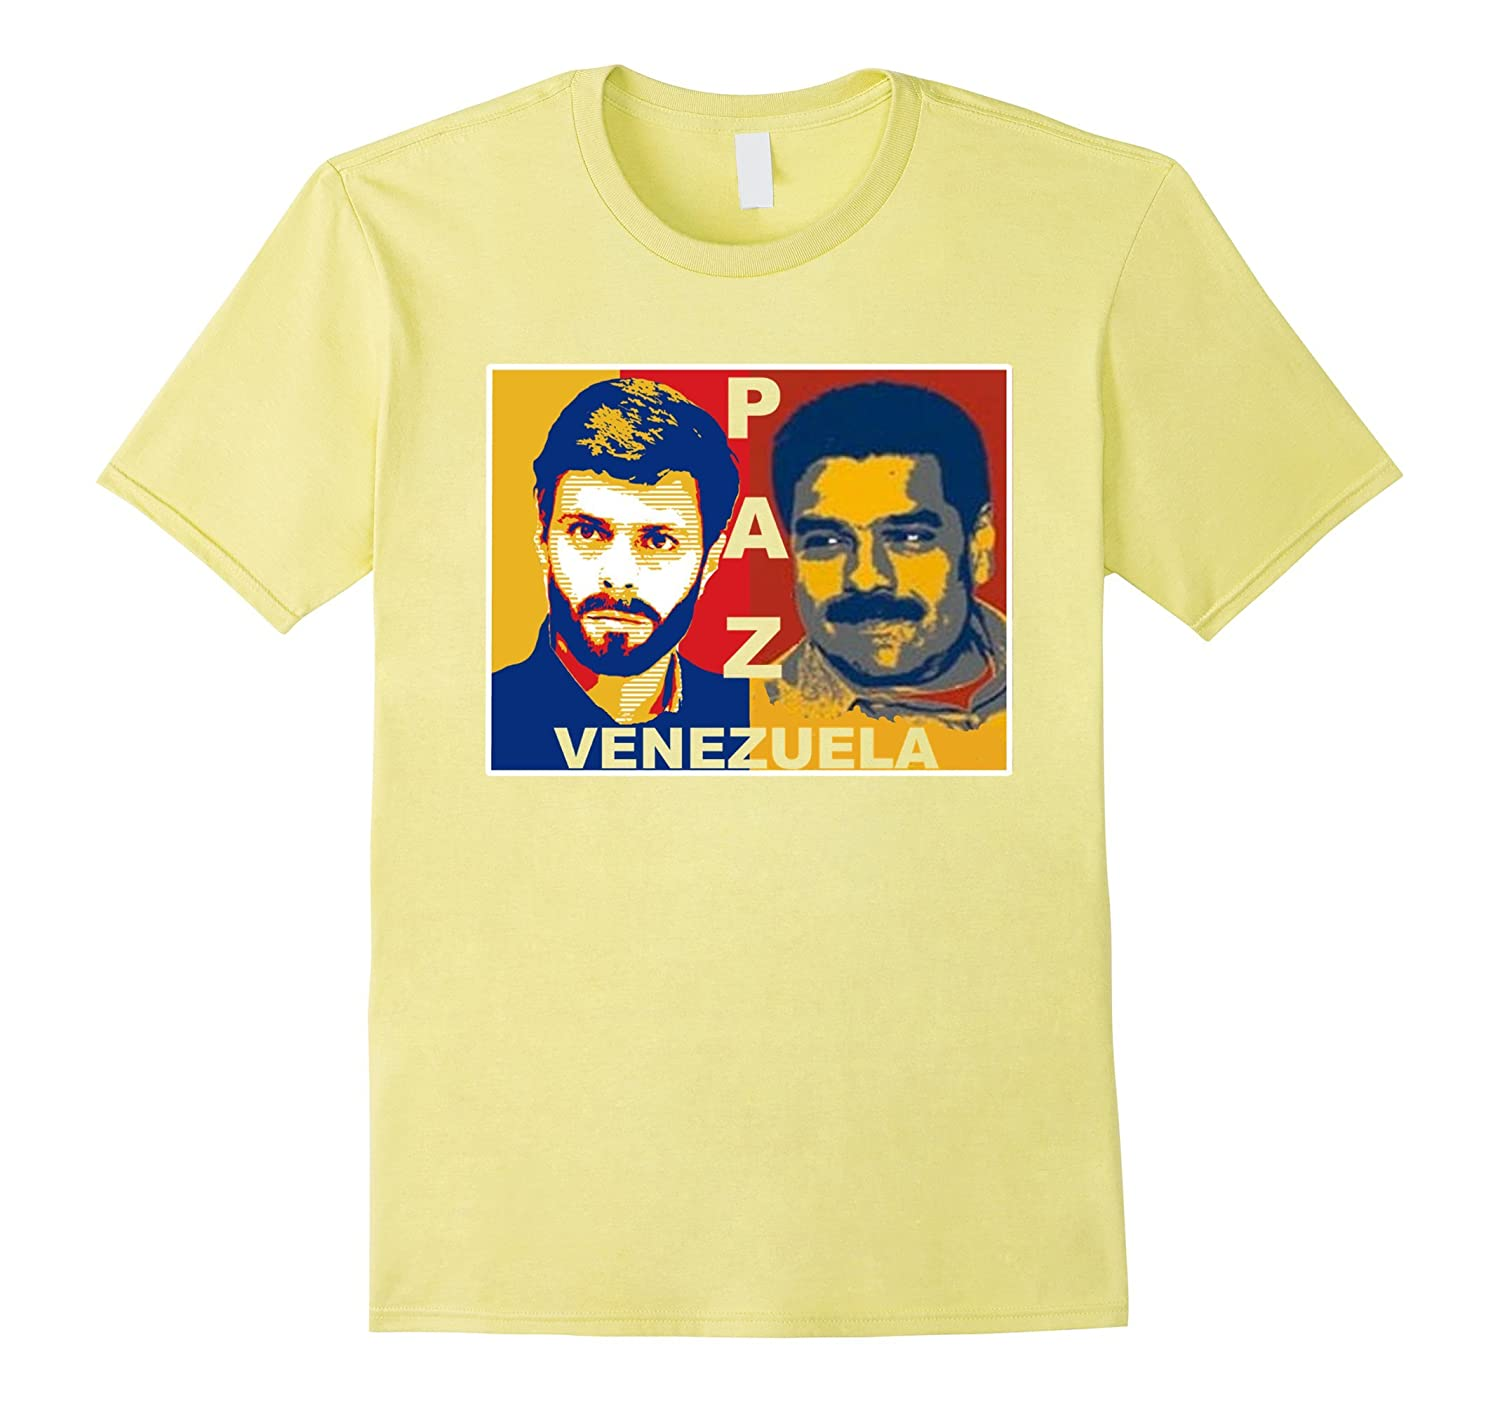 Paz Venezuela T-Shirt Pray Support Stand Peace Top Tee-Teehay